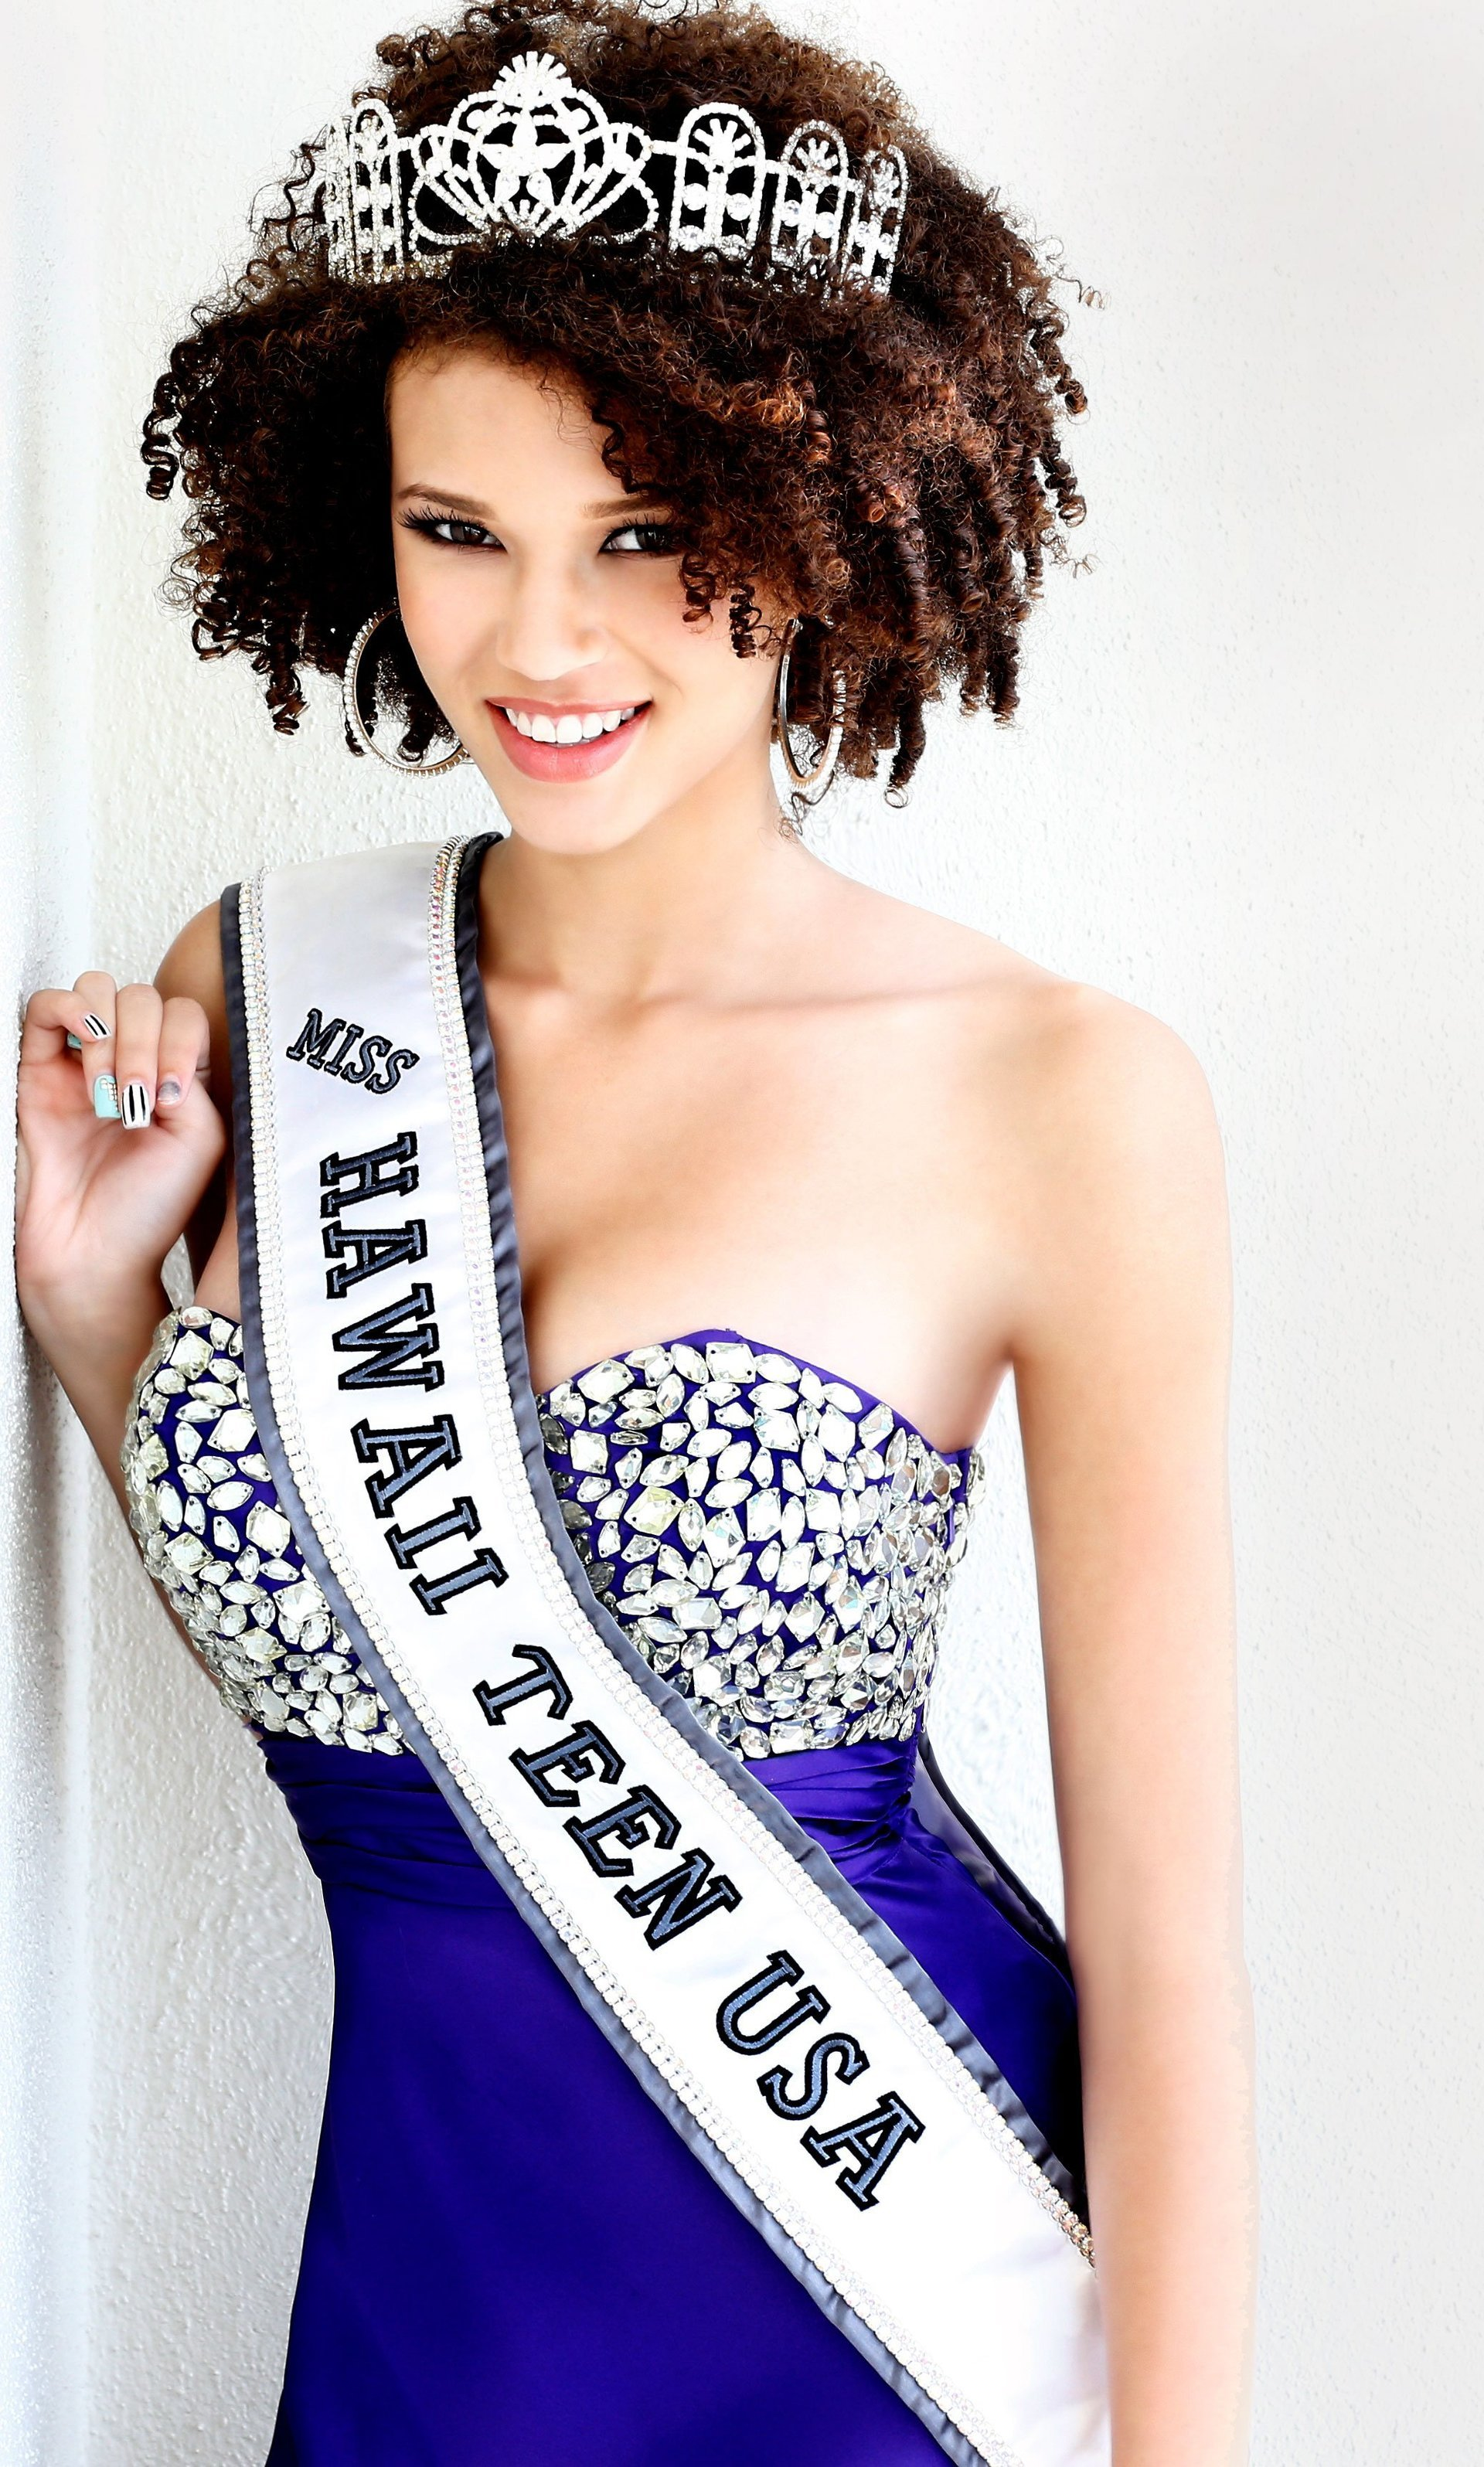 2013 Samantha Neyland (Top 16 at Miss Teen USA)